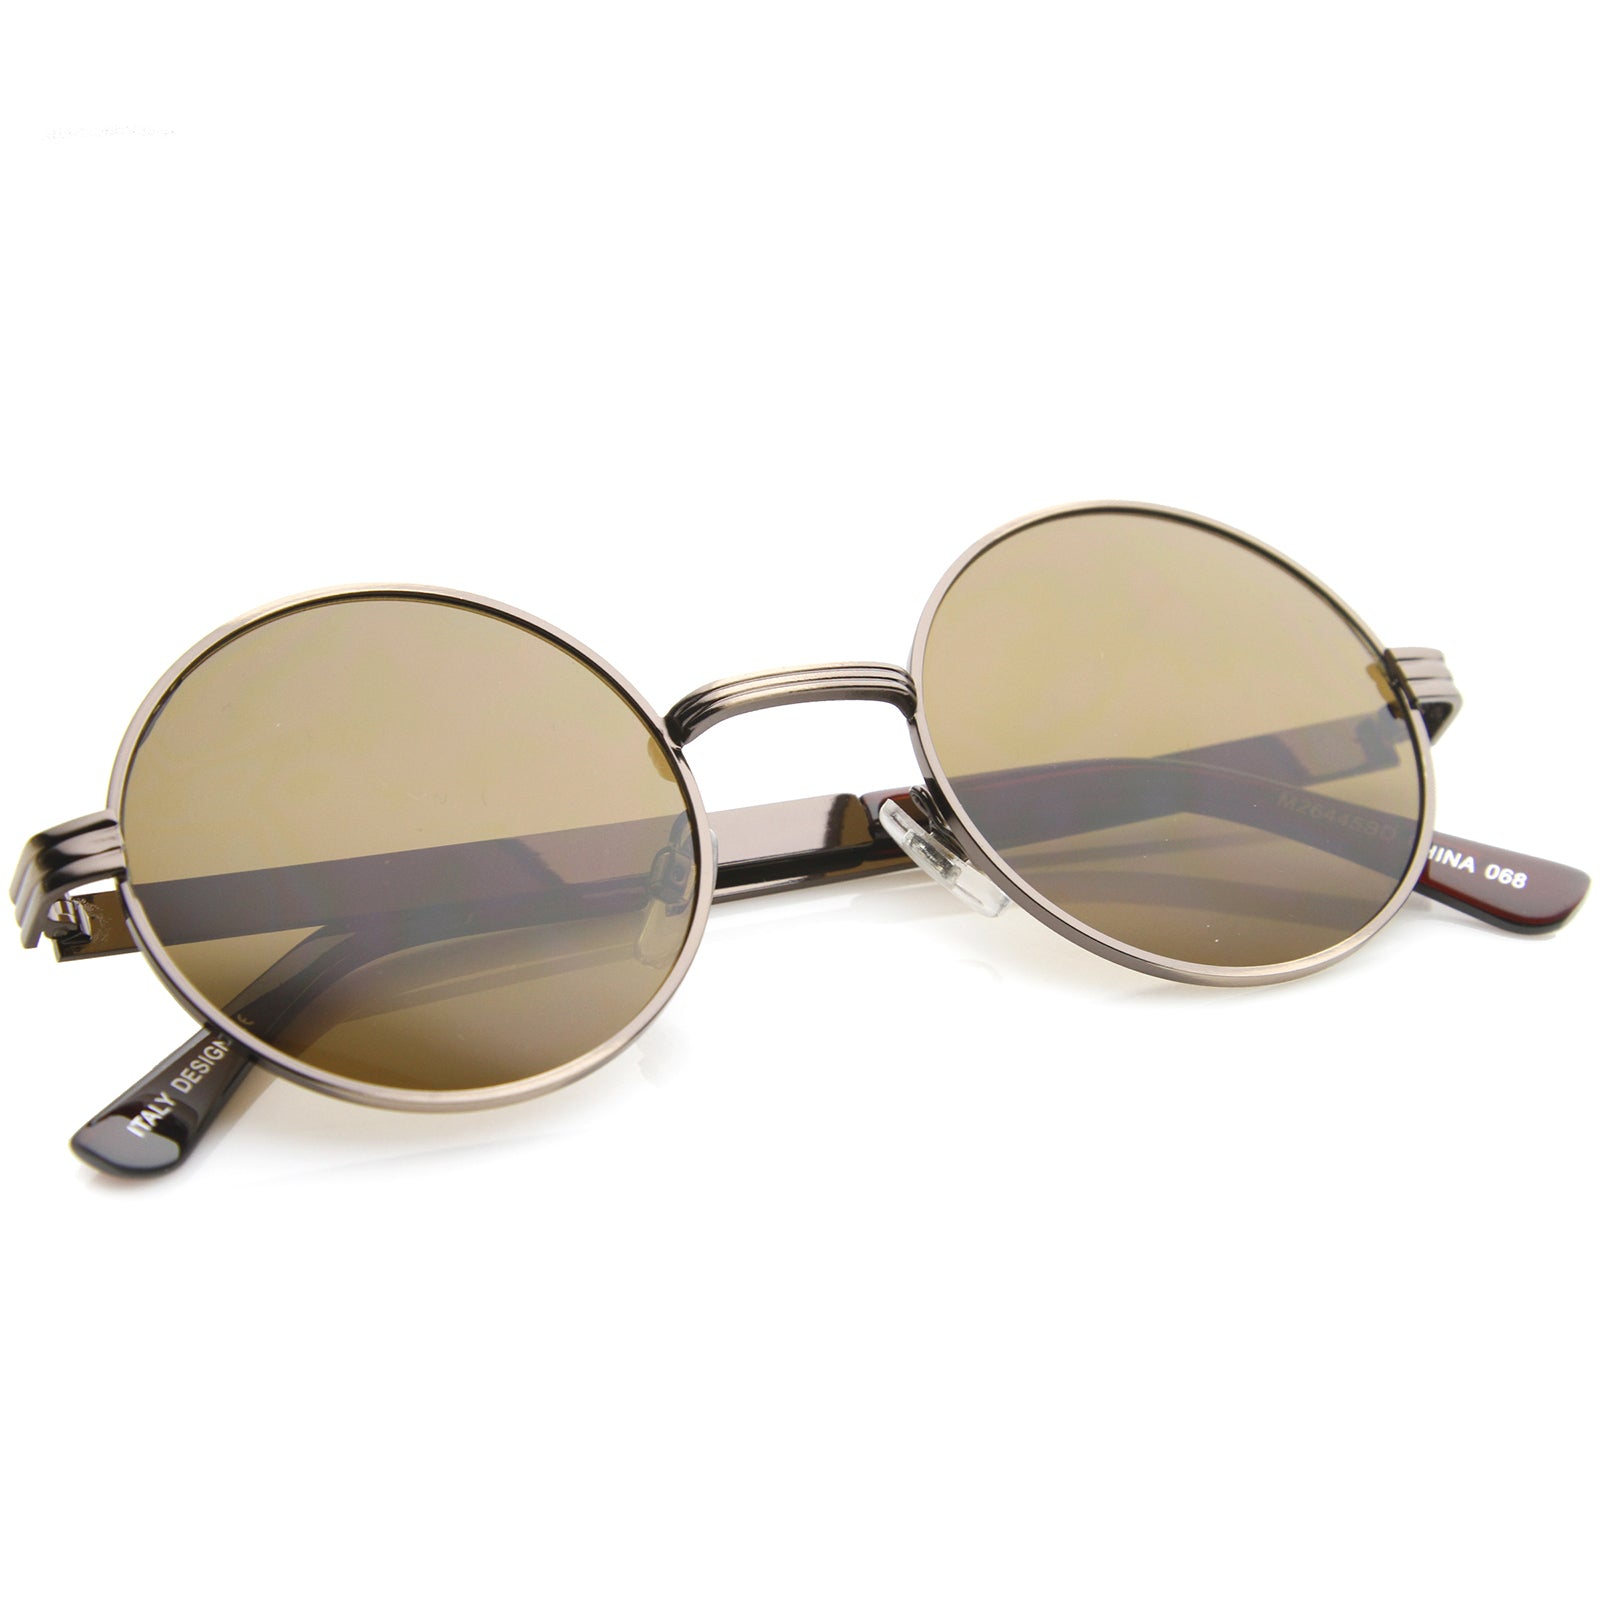 Retro Fashion Metal Textured Frame Flat Lens Round Sunglasses 50mm - sunglass.la - 16